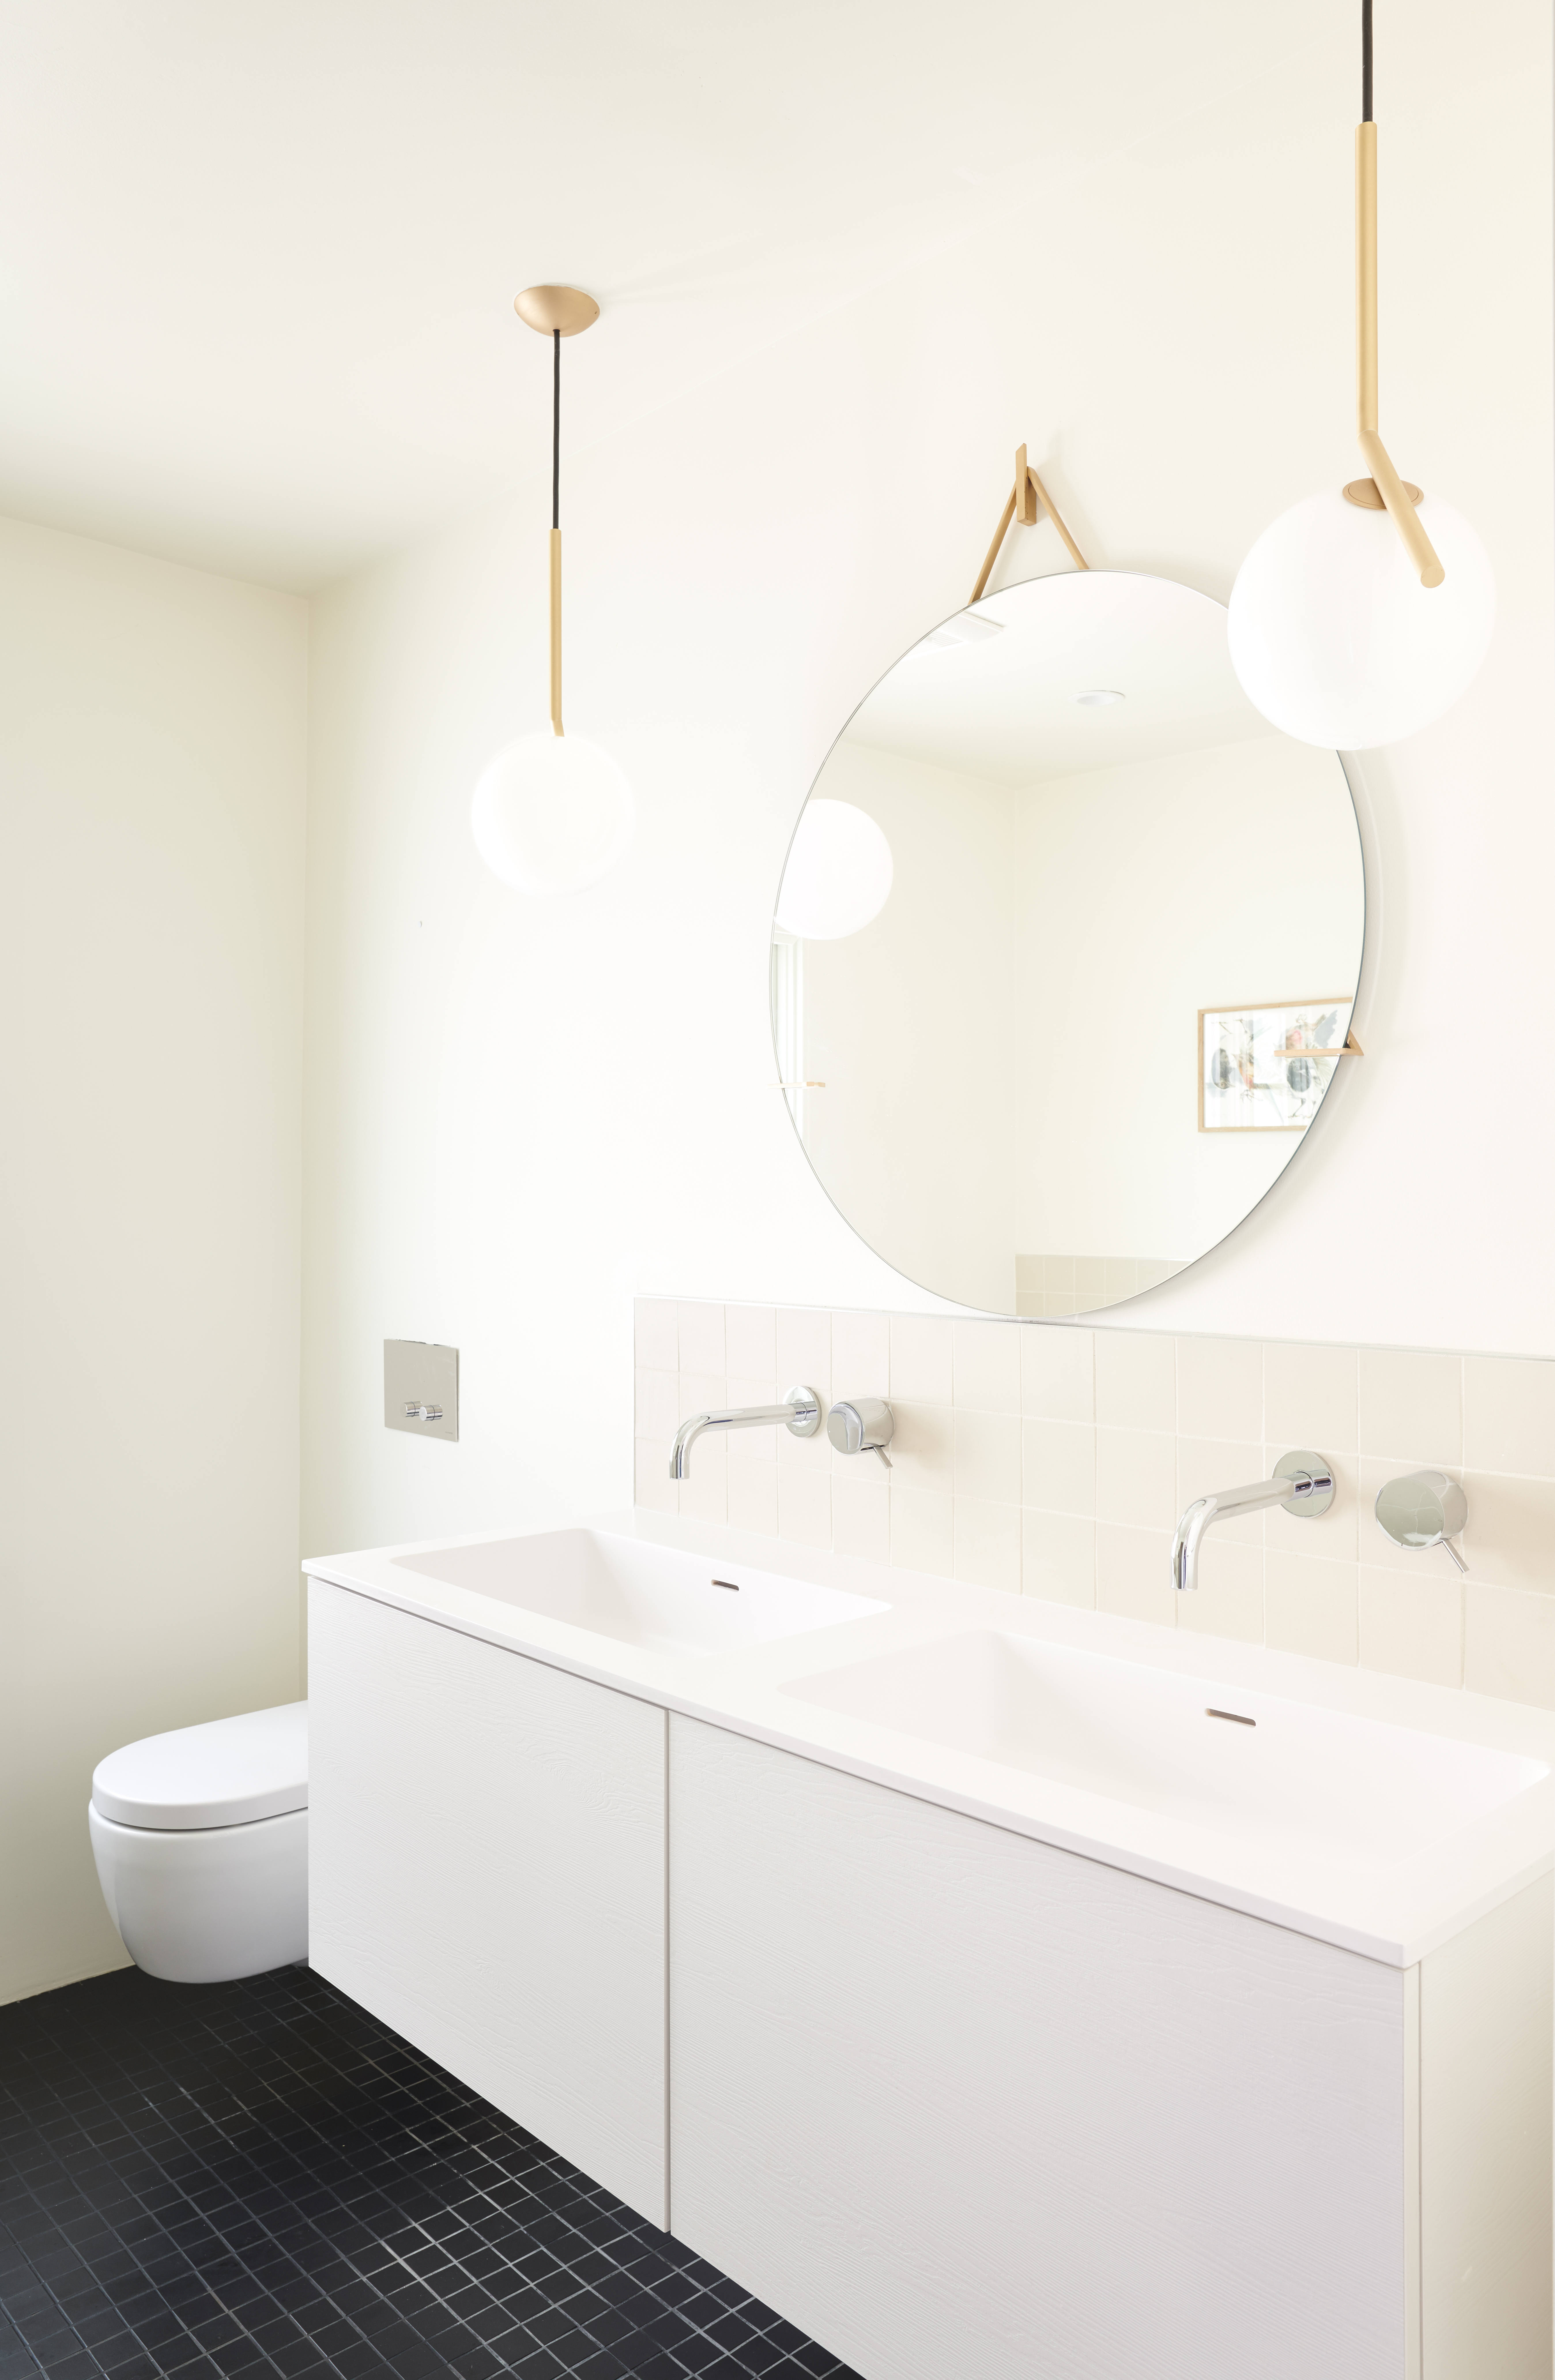 """The dressy black-and-white master bath is lit by Michael Anastasiades's IC Lights S2for Flos. The sink vanity and wall-hung toilet are fromBlu Bath Works(""""suspended toilets were a must for a light and airy line,"""" says Stéphanie, """"the cabinets and countertops are minimalist and echo the kitchen design""""). The unglazed white backsplash tiles and square black floor tiles are from Heath. The mirror is by Egg Collective."""